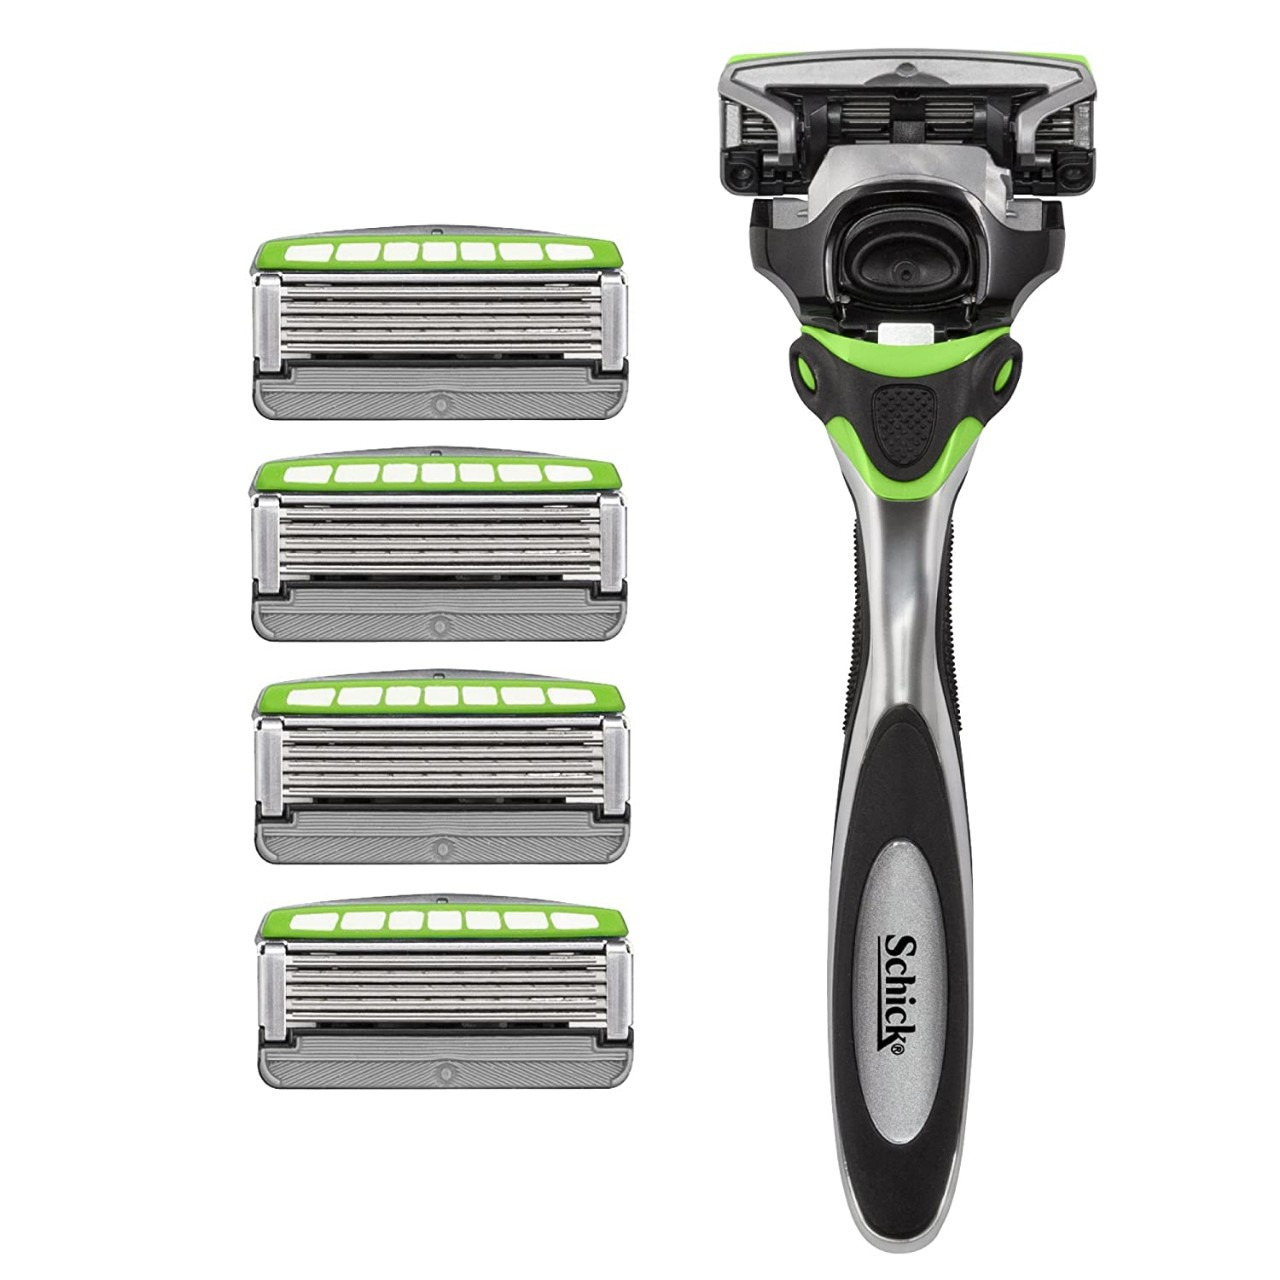 Schick Hydro Sense Sensitive Razors for Men With Skin Guards and Shock Absorbent Technology, 1 Razor